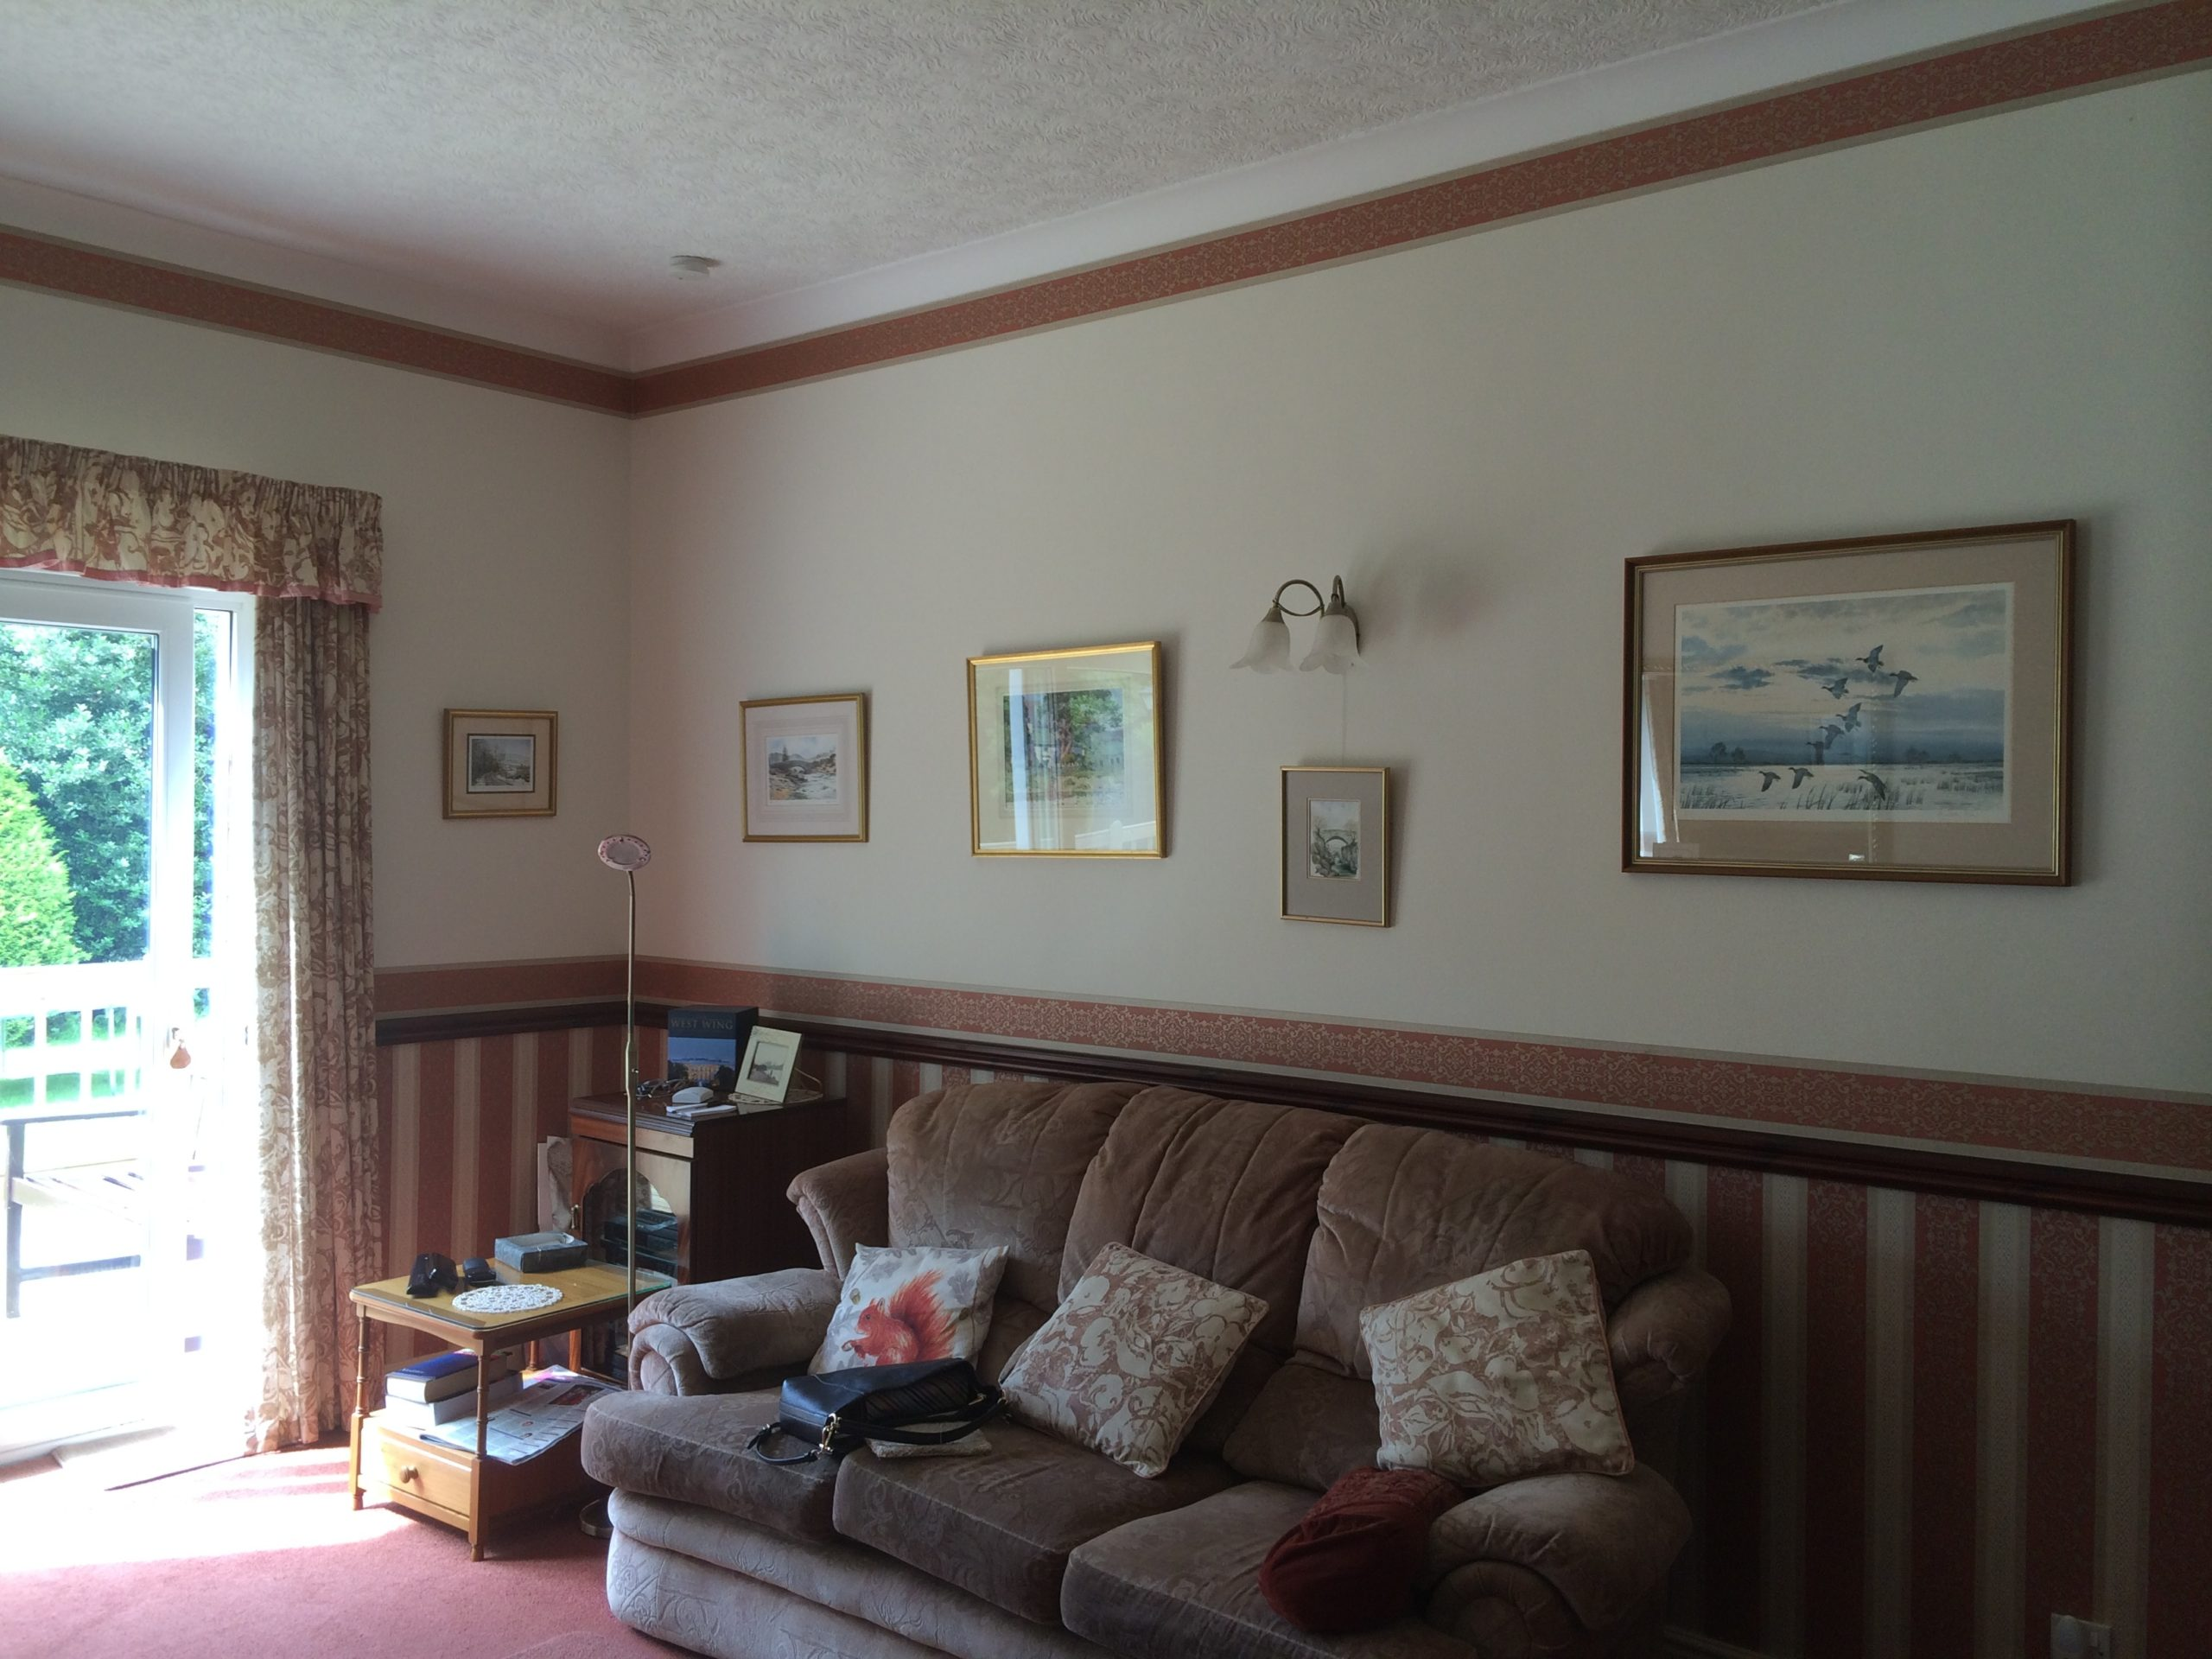 Living room before image